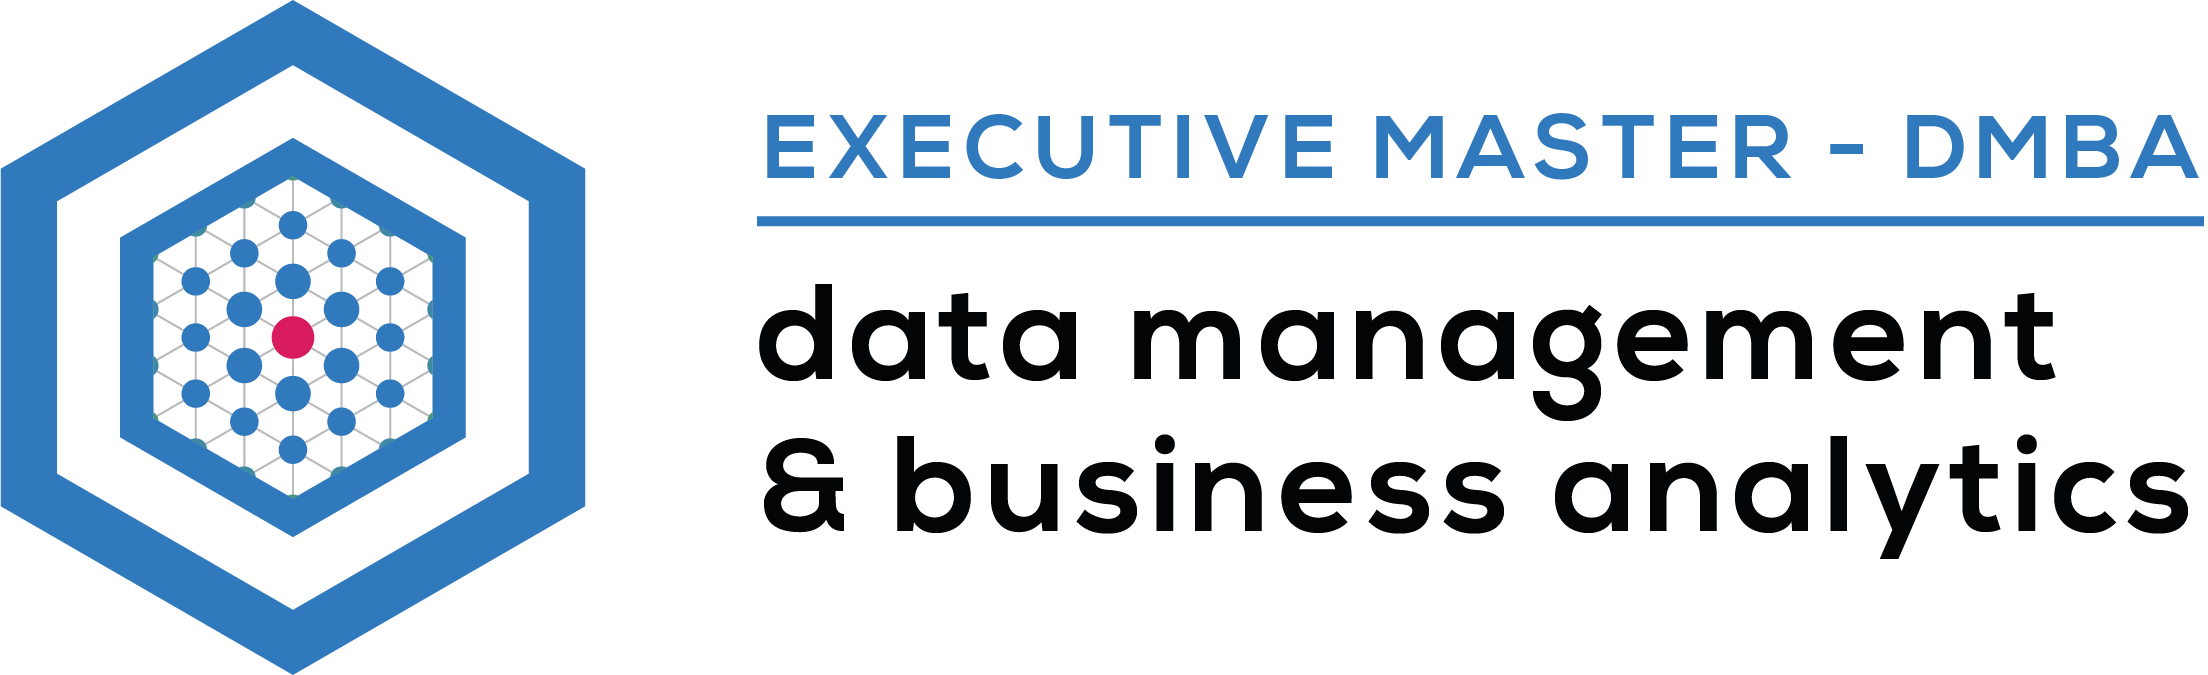 Master DMBA - Data Management & Business Analytics